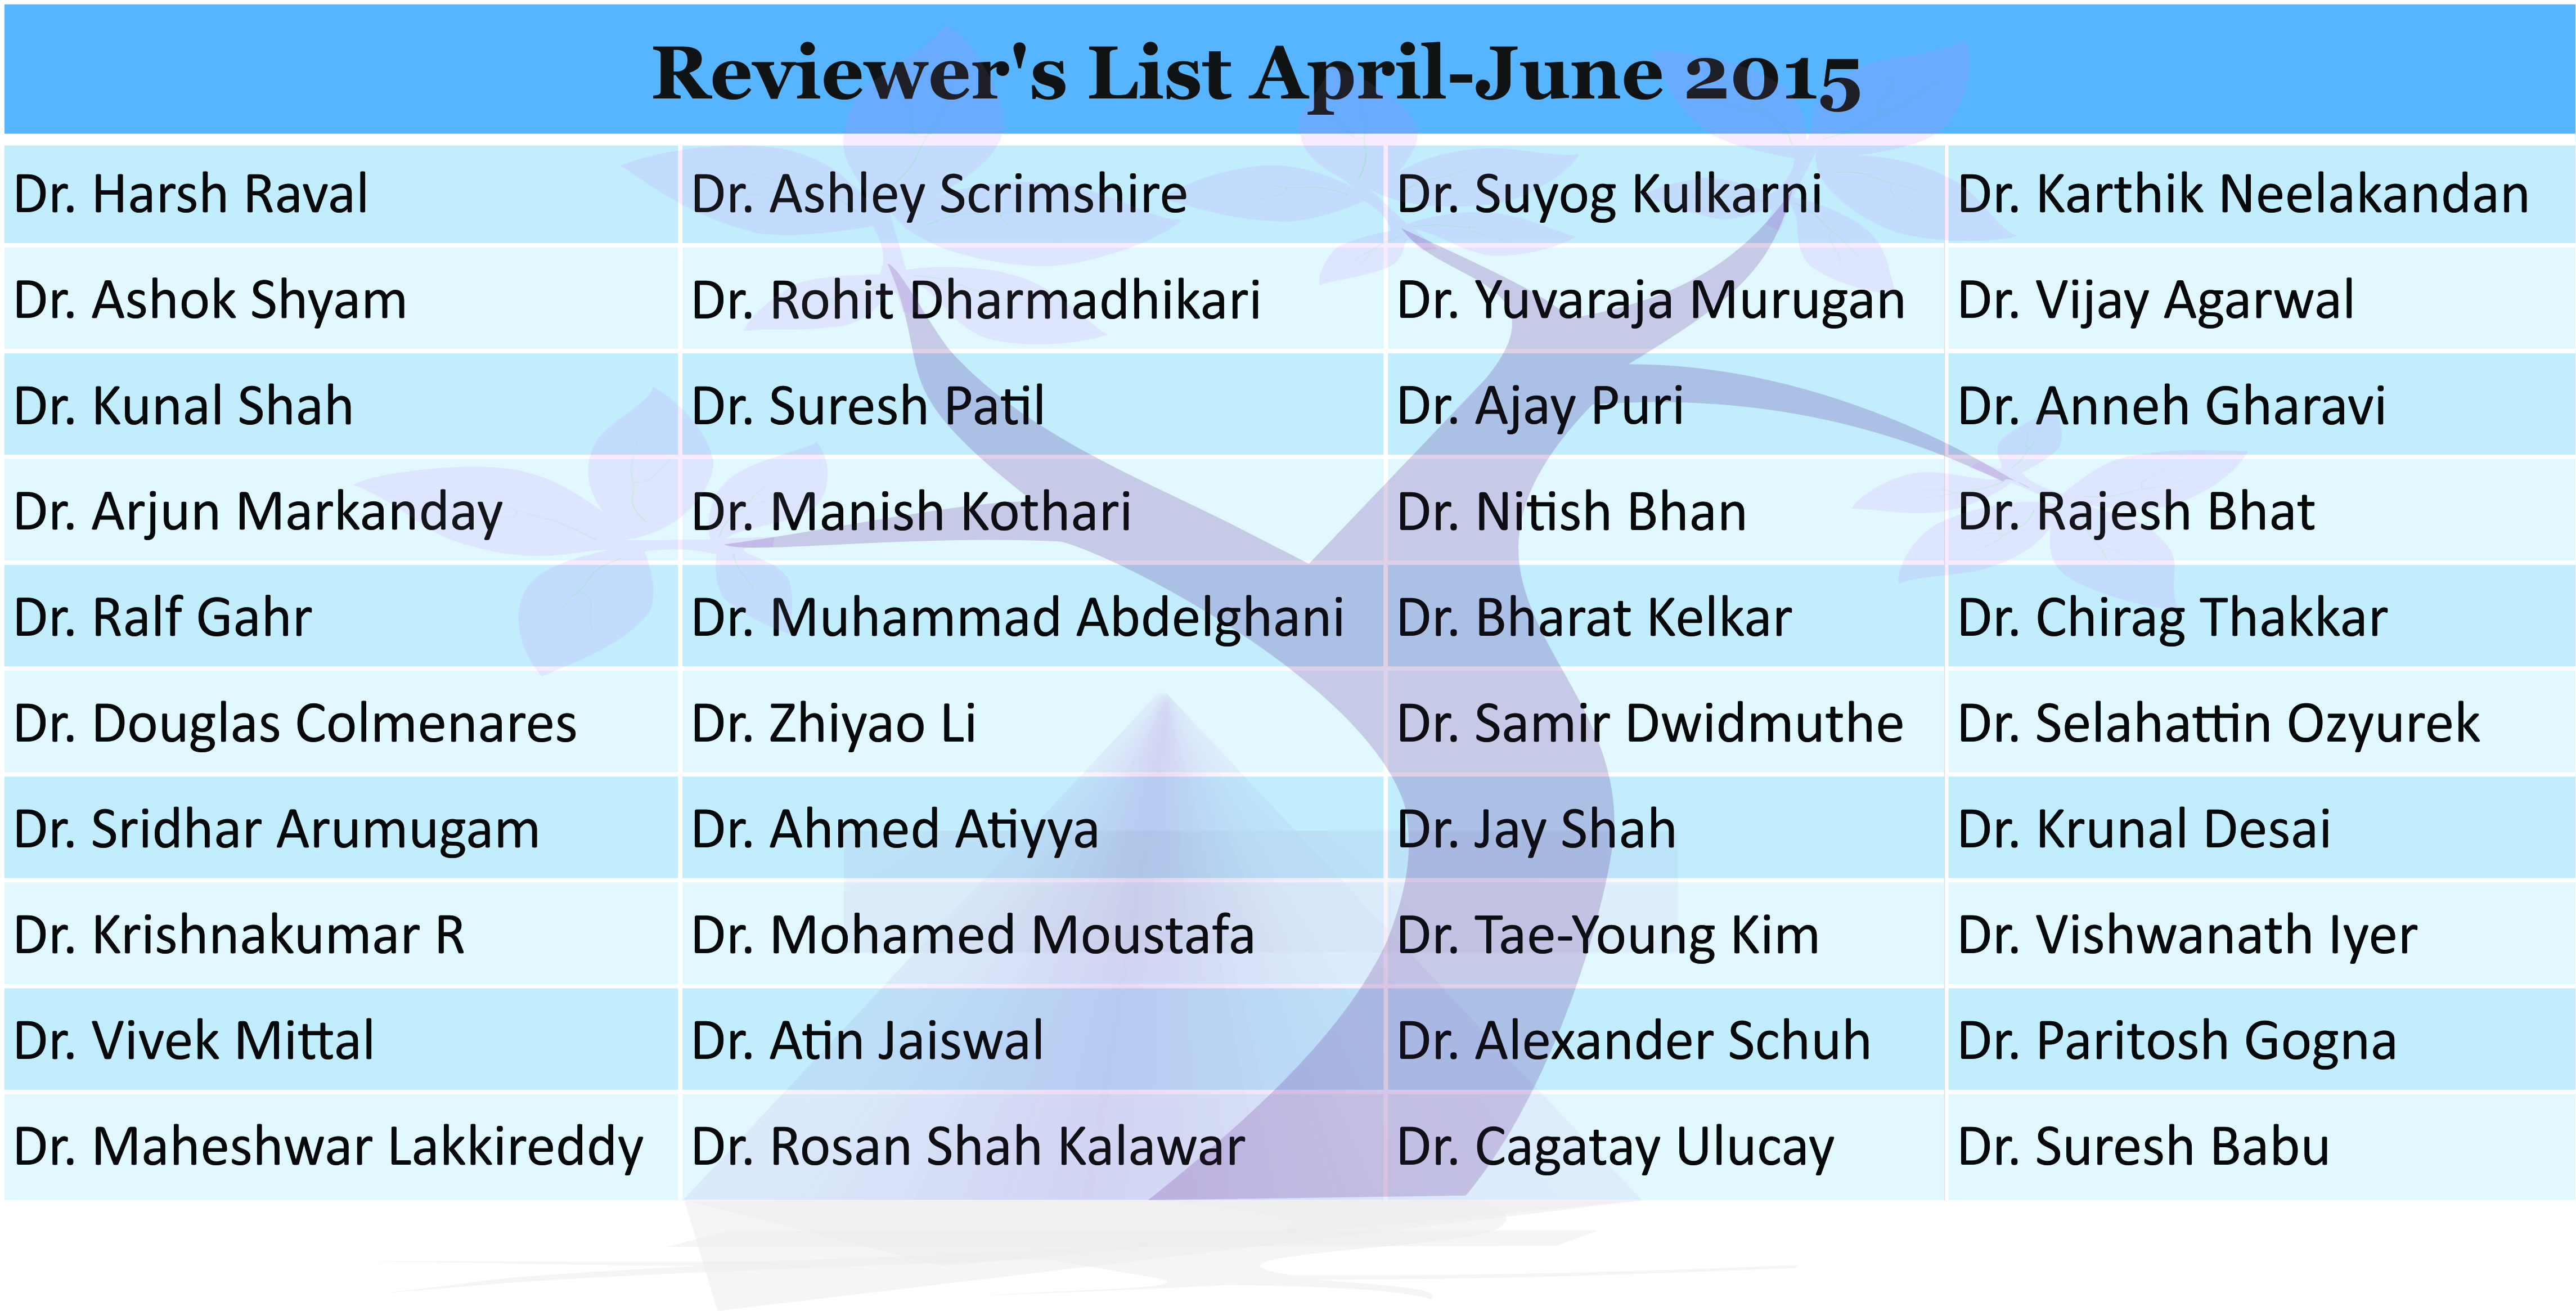 Reviewer's Name